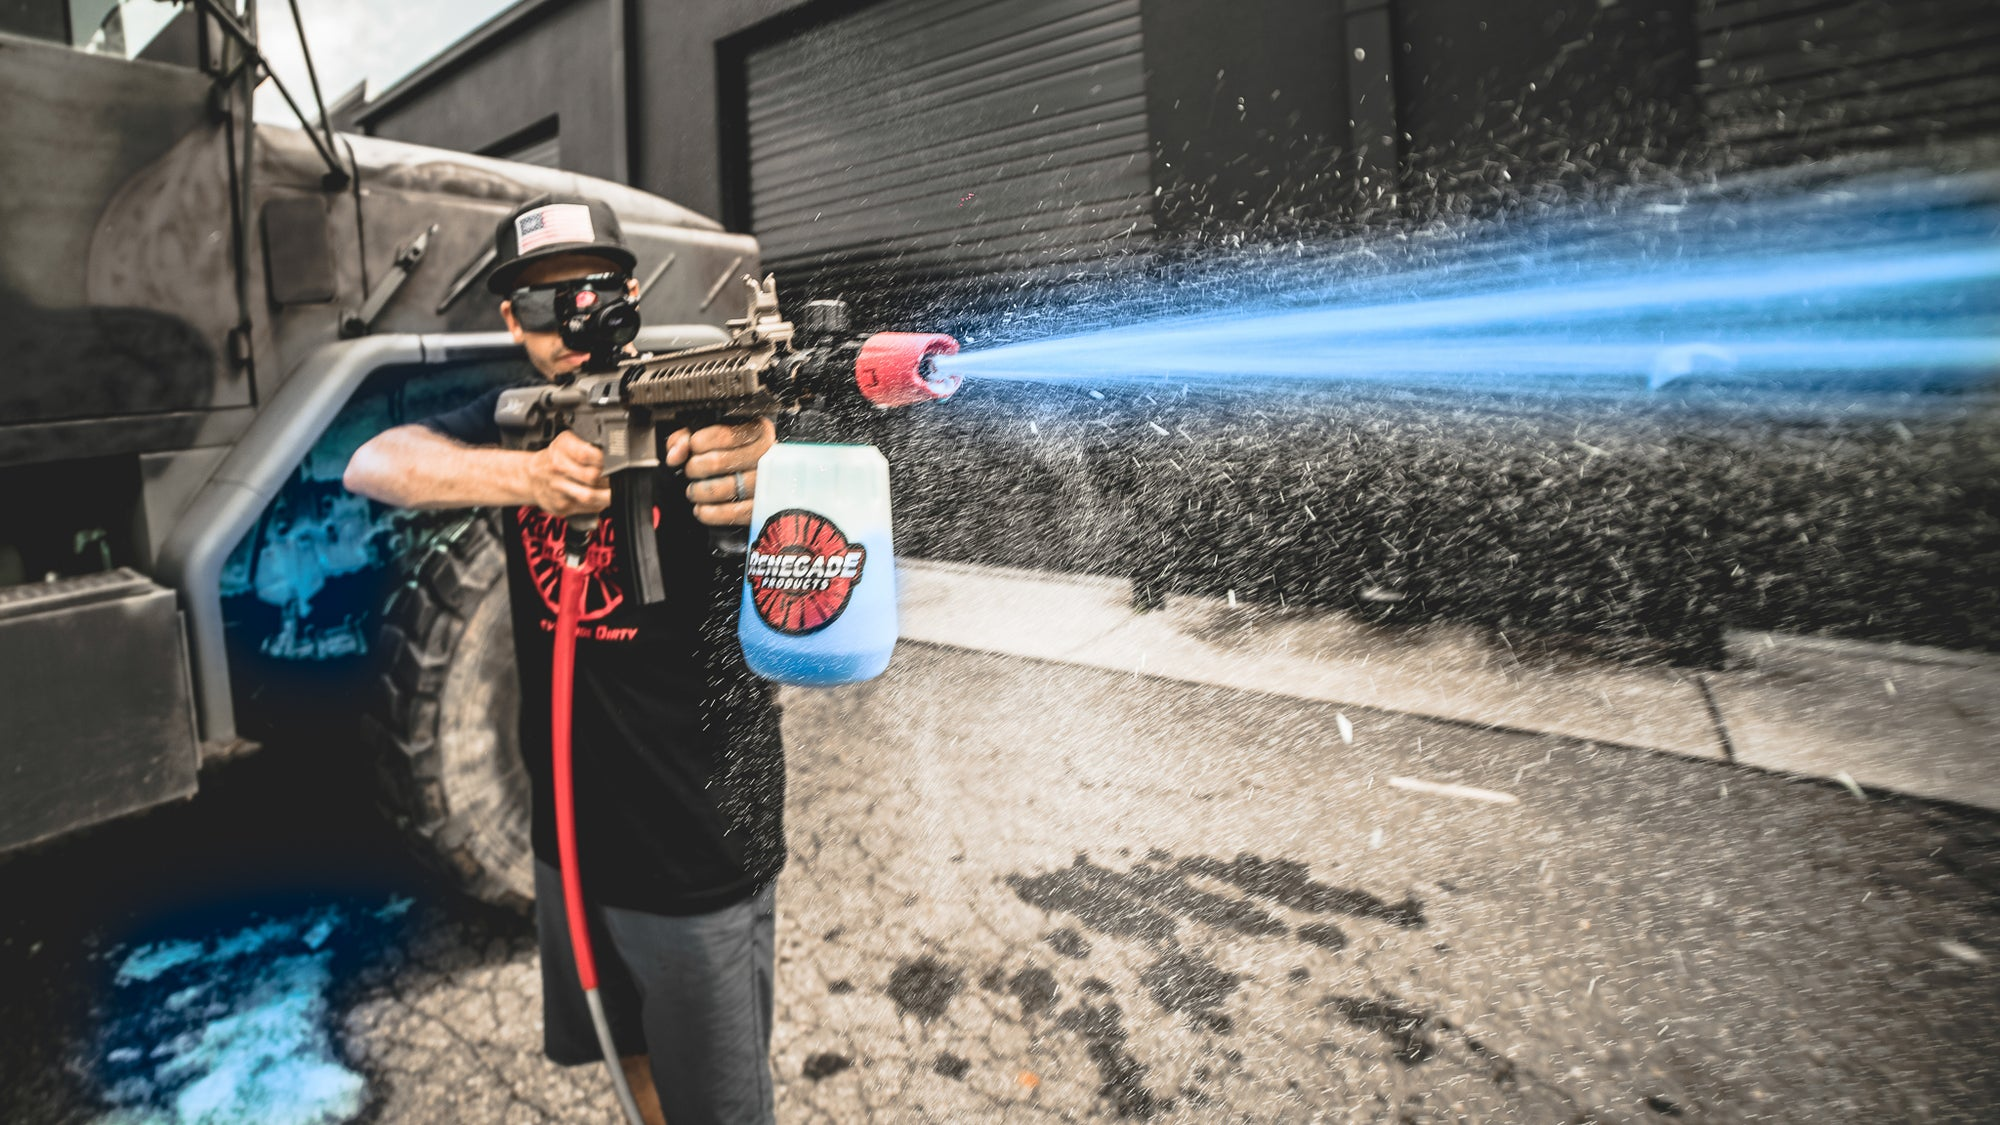 AR15 foam cannon / AR15 pressure washer wand giveaway